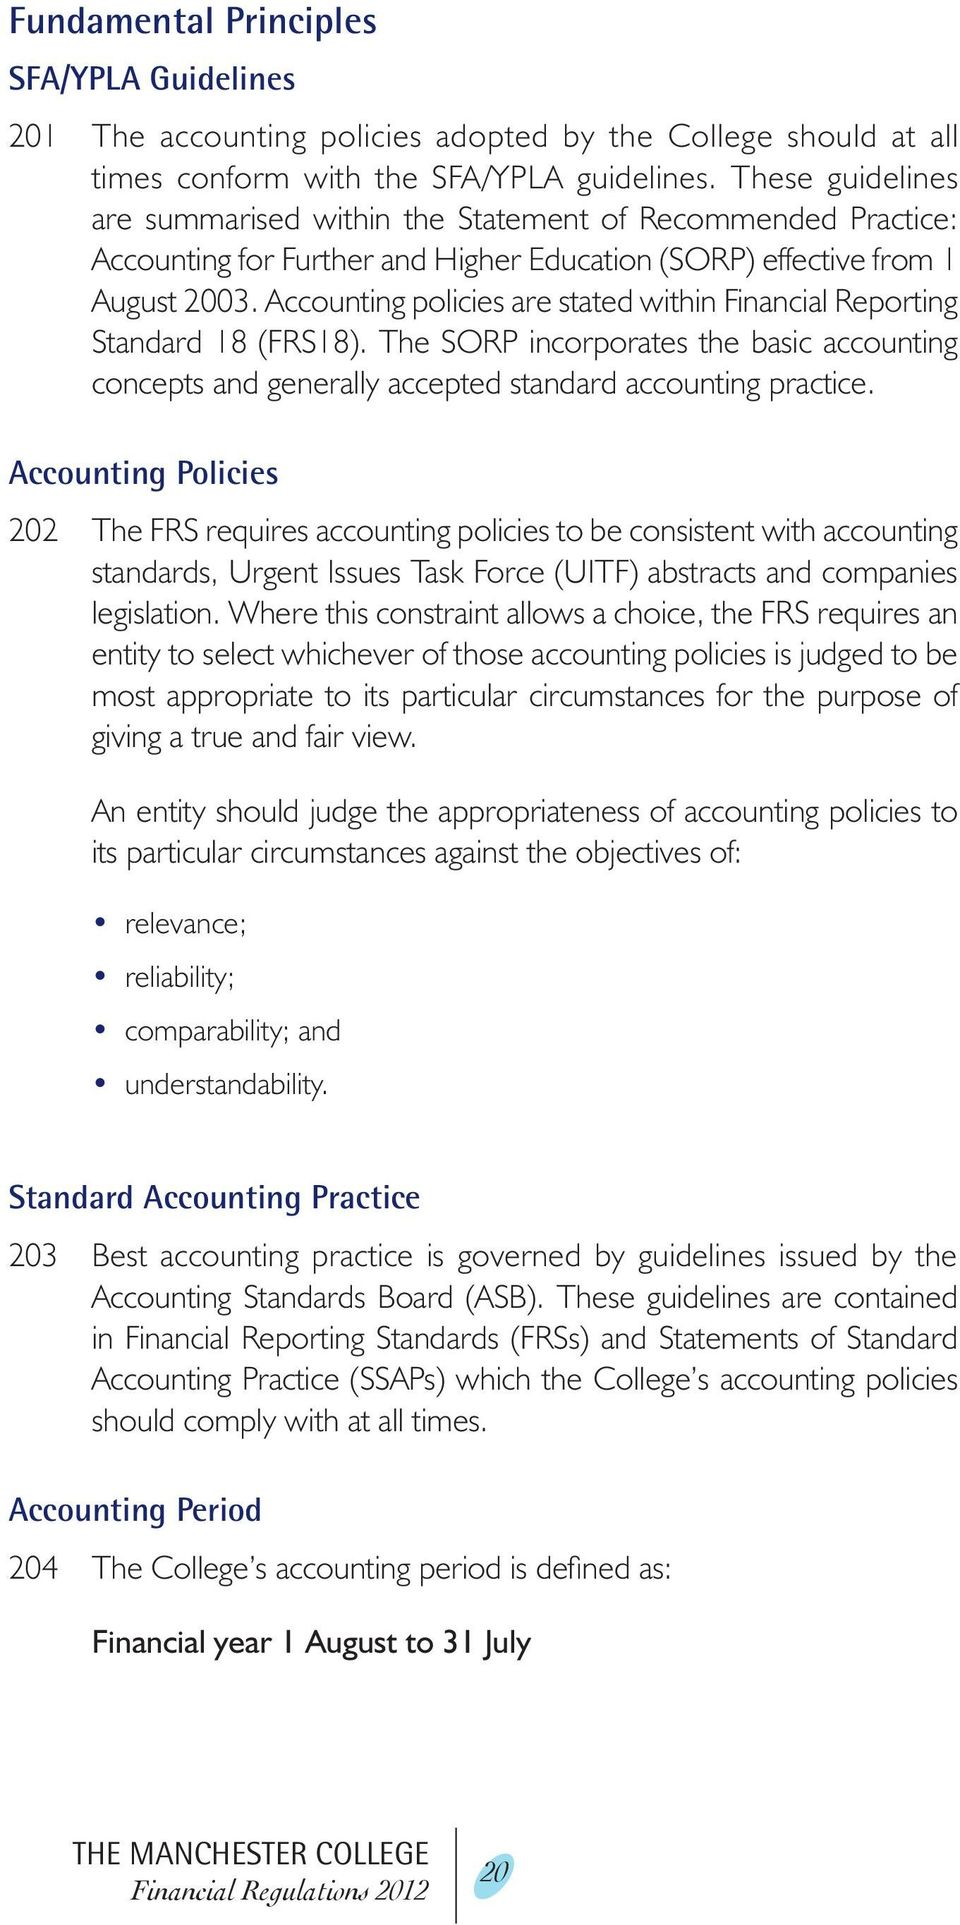 Accounting policies are stated within Financial Reporting Standard 18 (FRS18). The SORP incorporates the basic accounting concepts and generally accepted standard accounting practice.